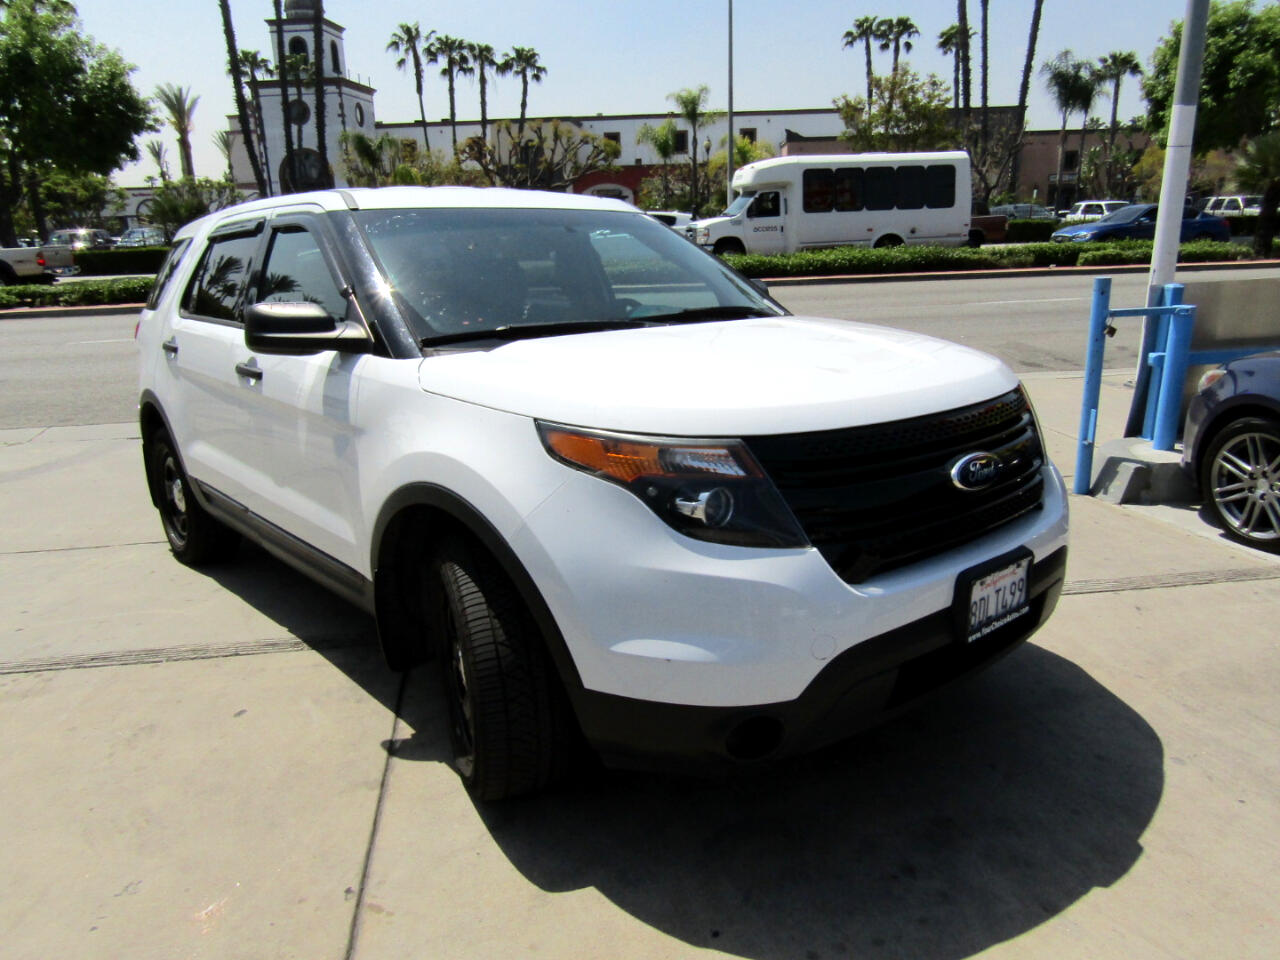 Ford Explorer Police 4WD 2014